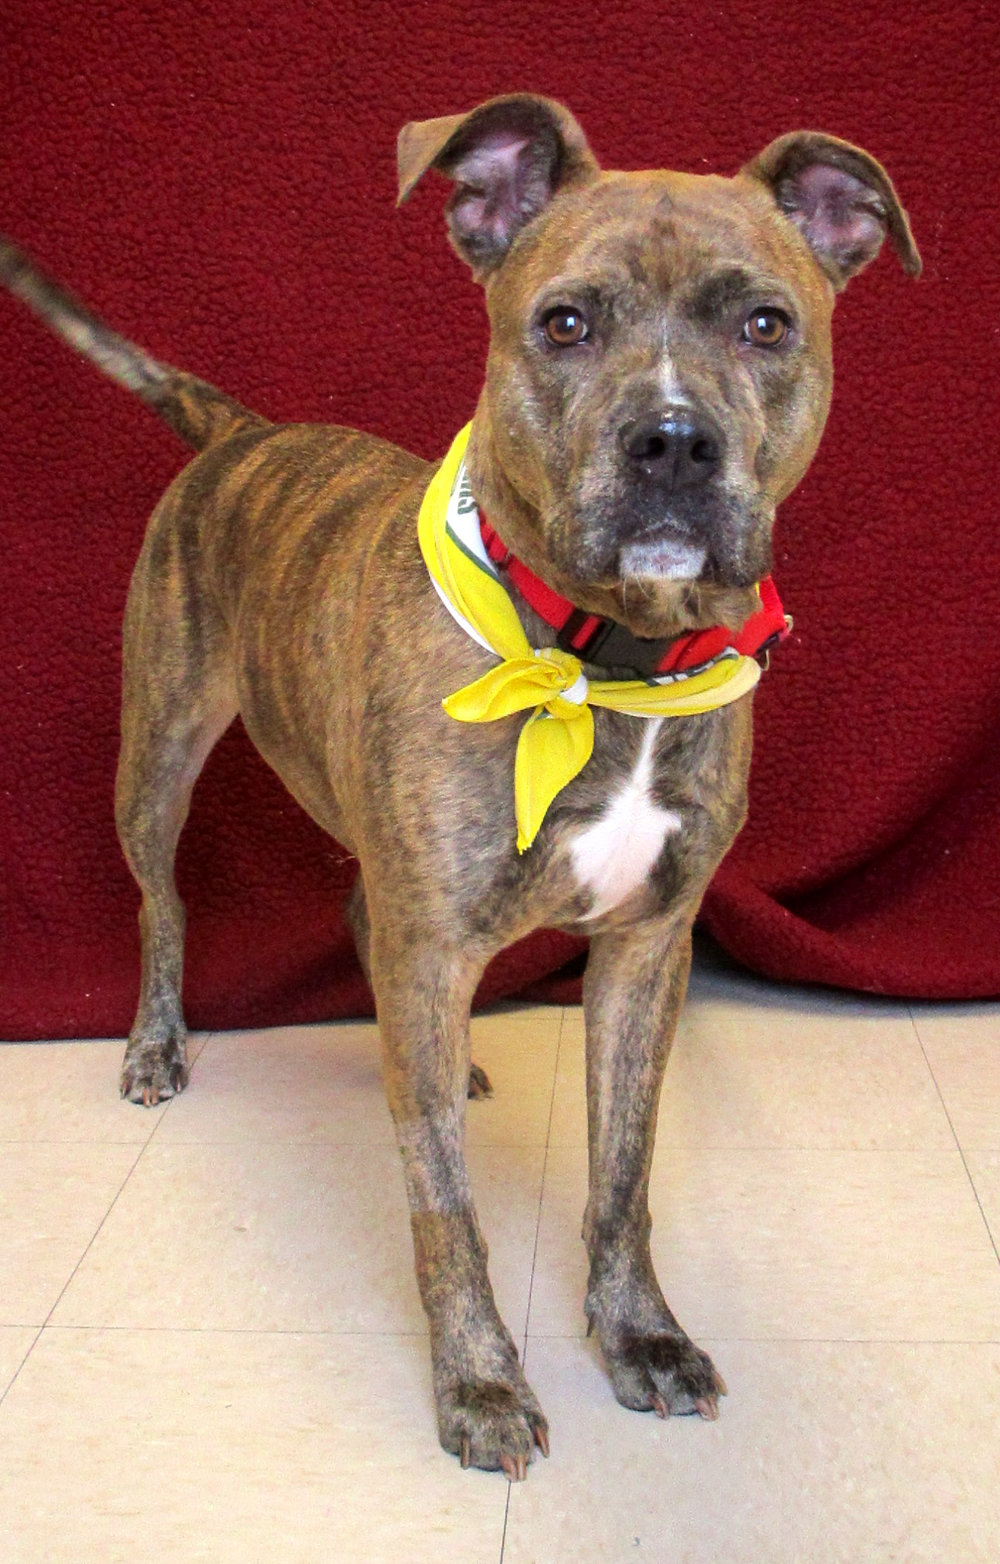 Paco is a sweet, loving, silly 2-year-old Pit Bull mix. He has beautiful brindle markings and has the personality to match.  Meeting new people can be a little overwhelming for him, so a home that will take it slow and help him realize that people are great would be the best for him.